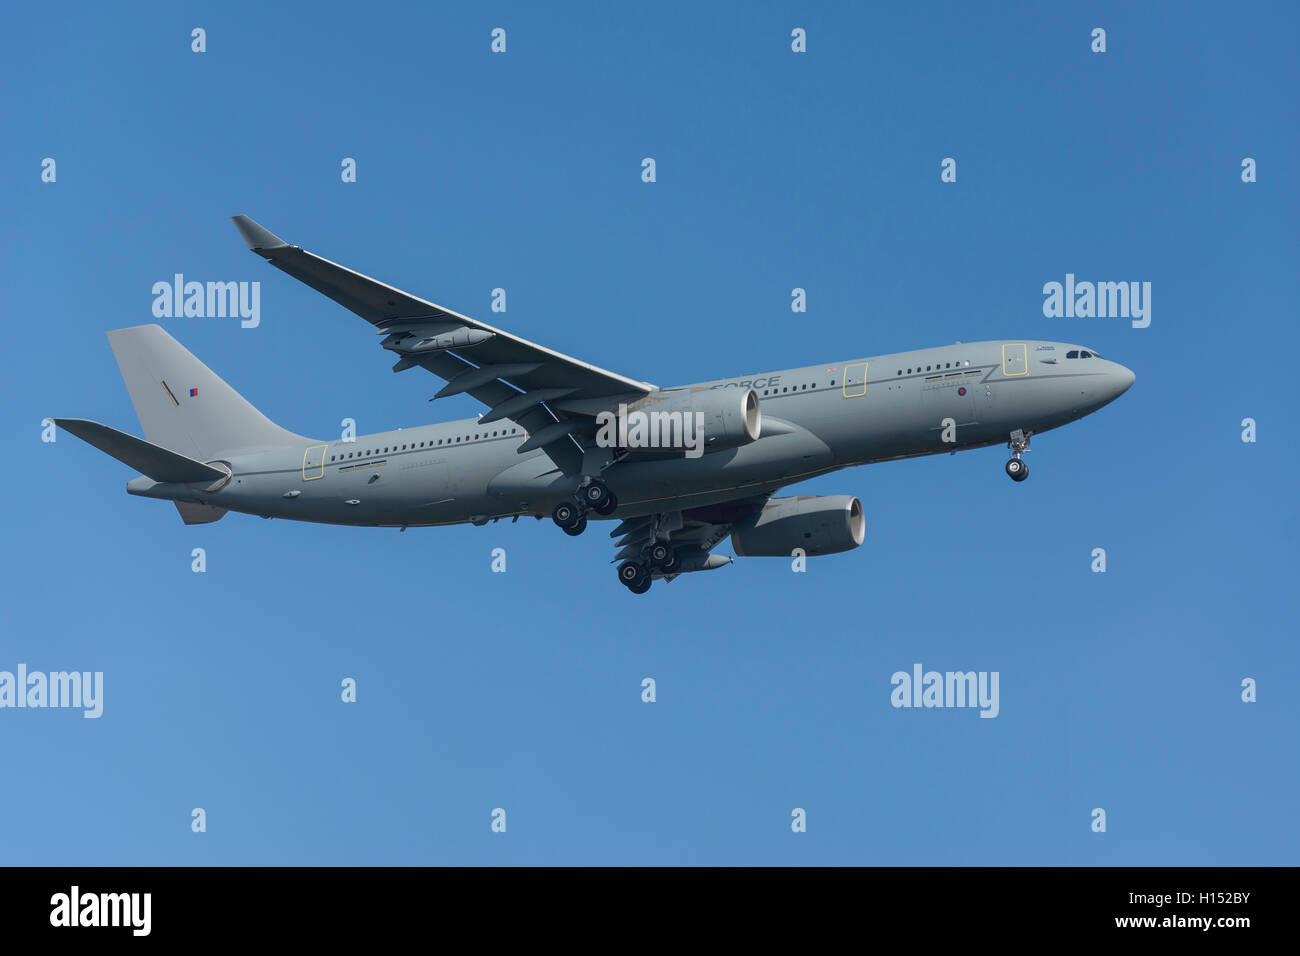 Royal Airforce Airbus KC2 Voyager aircraft landing at Heathrow Airport, Greater London, England, United Kingdom - Stock Image